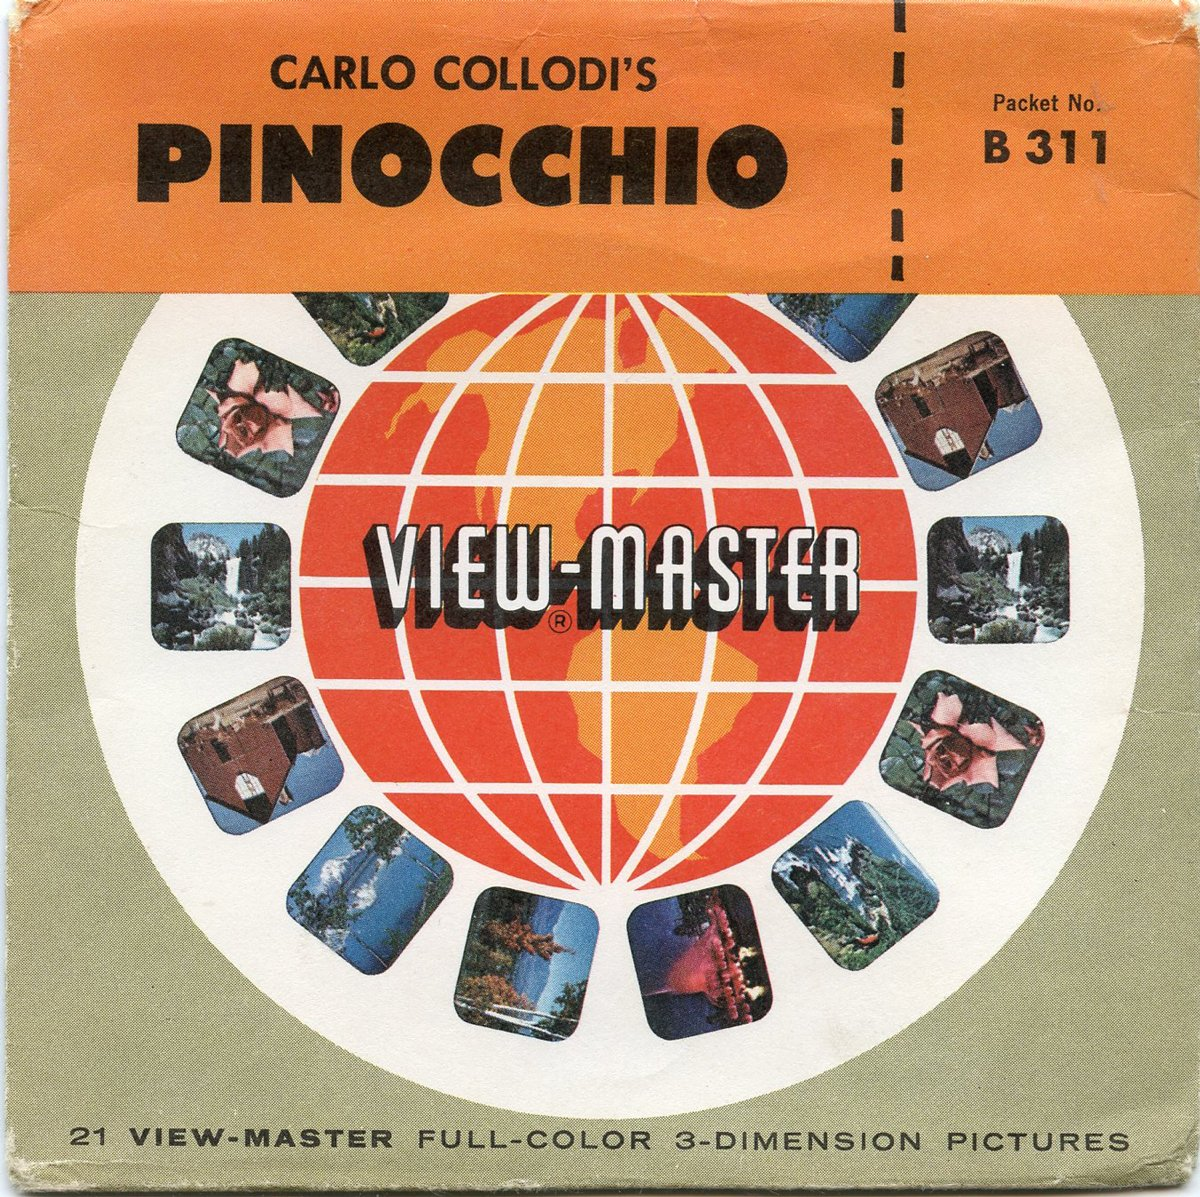 Carlo Collodi's PINOCCHIO - Classic ViewMaster 3 Reel Packet - 21 3D images - Sawyer's Universal edition